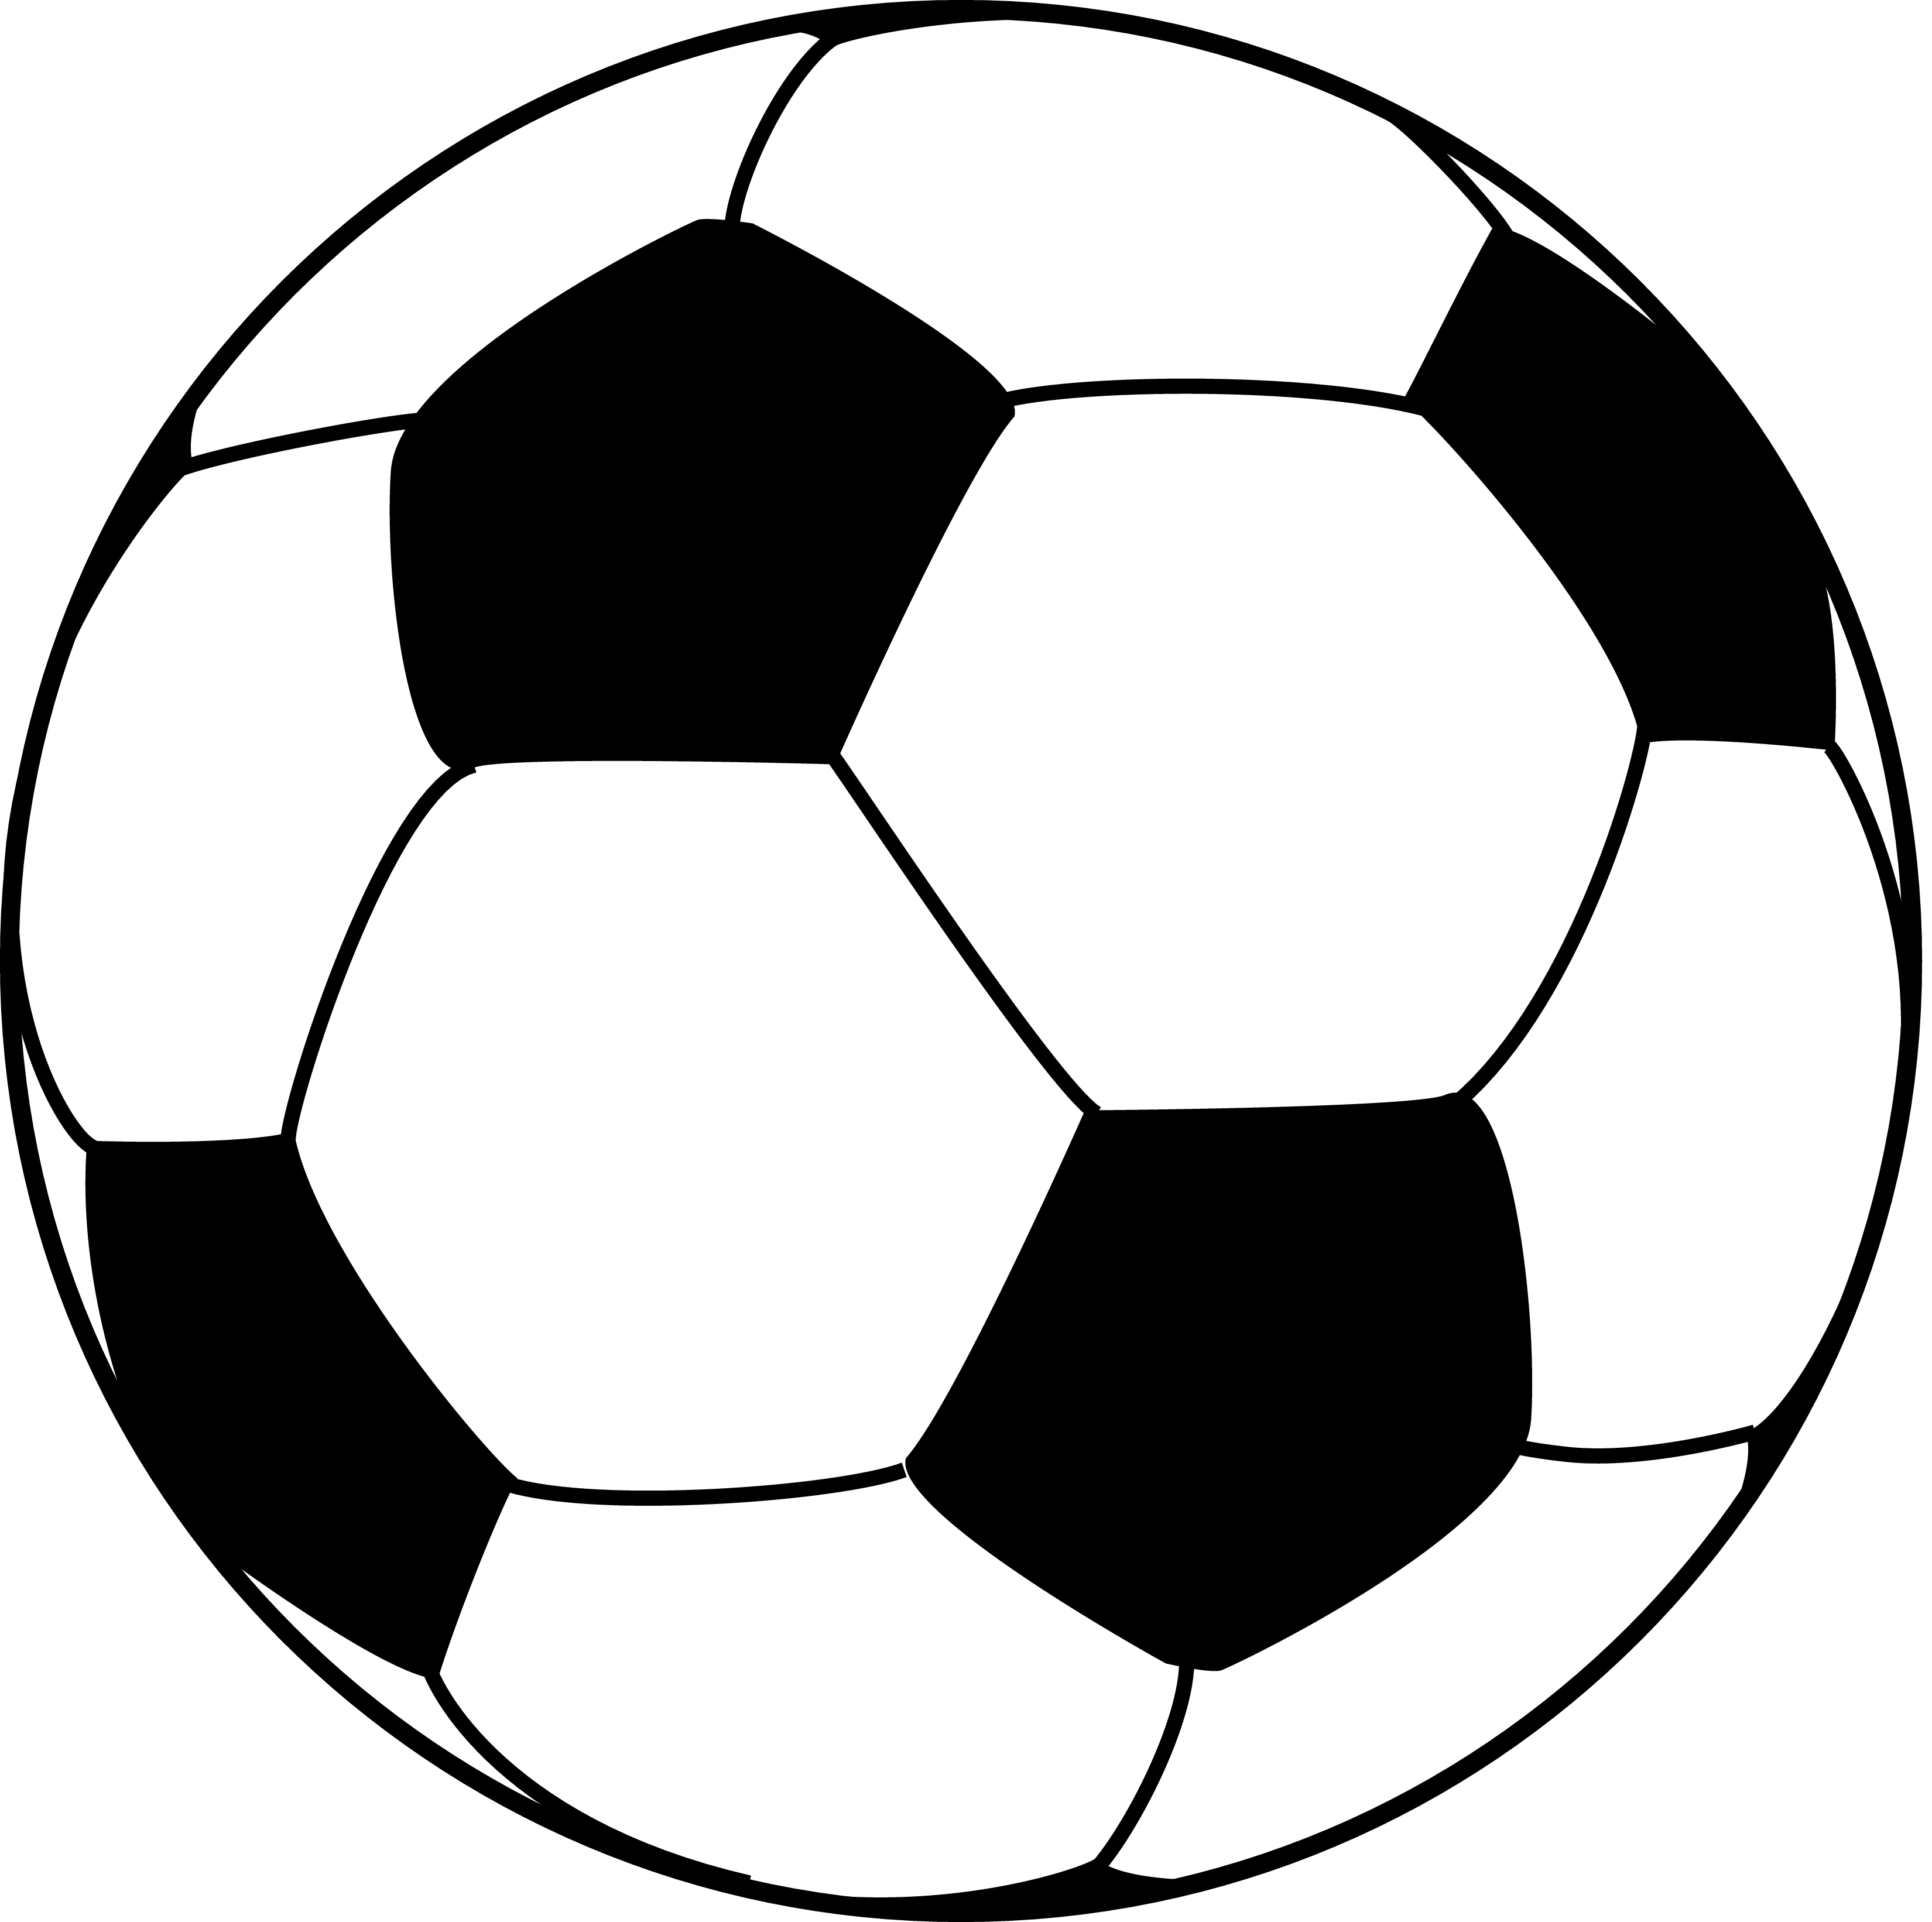 Soccer ball clipart png 4 » Clipart Station.